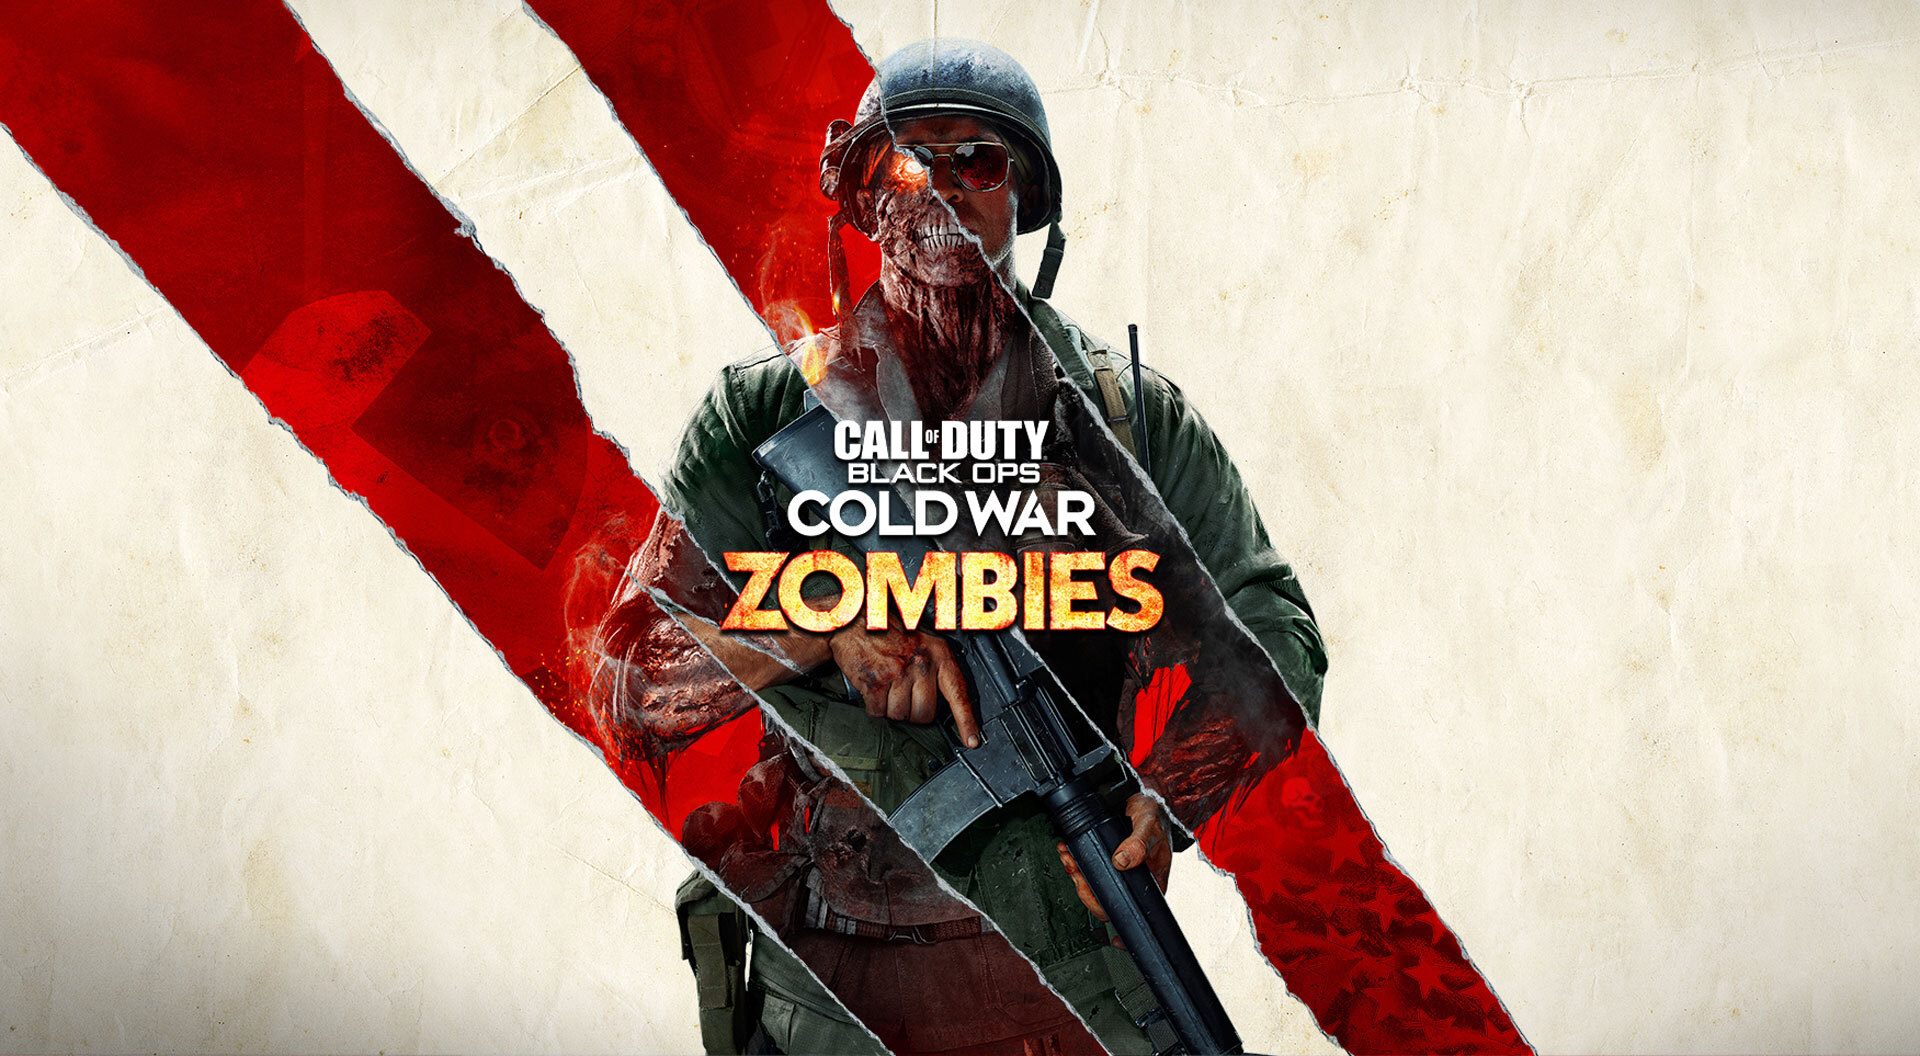 Zombi di Call of Duty®: Black Ops Cold War - Un nuovo inizio